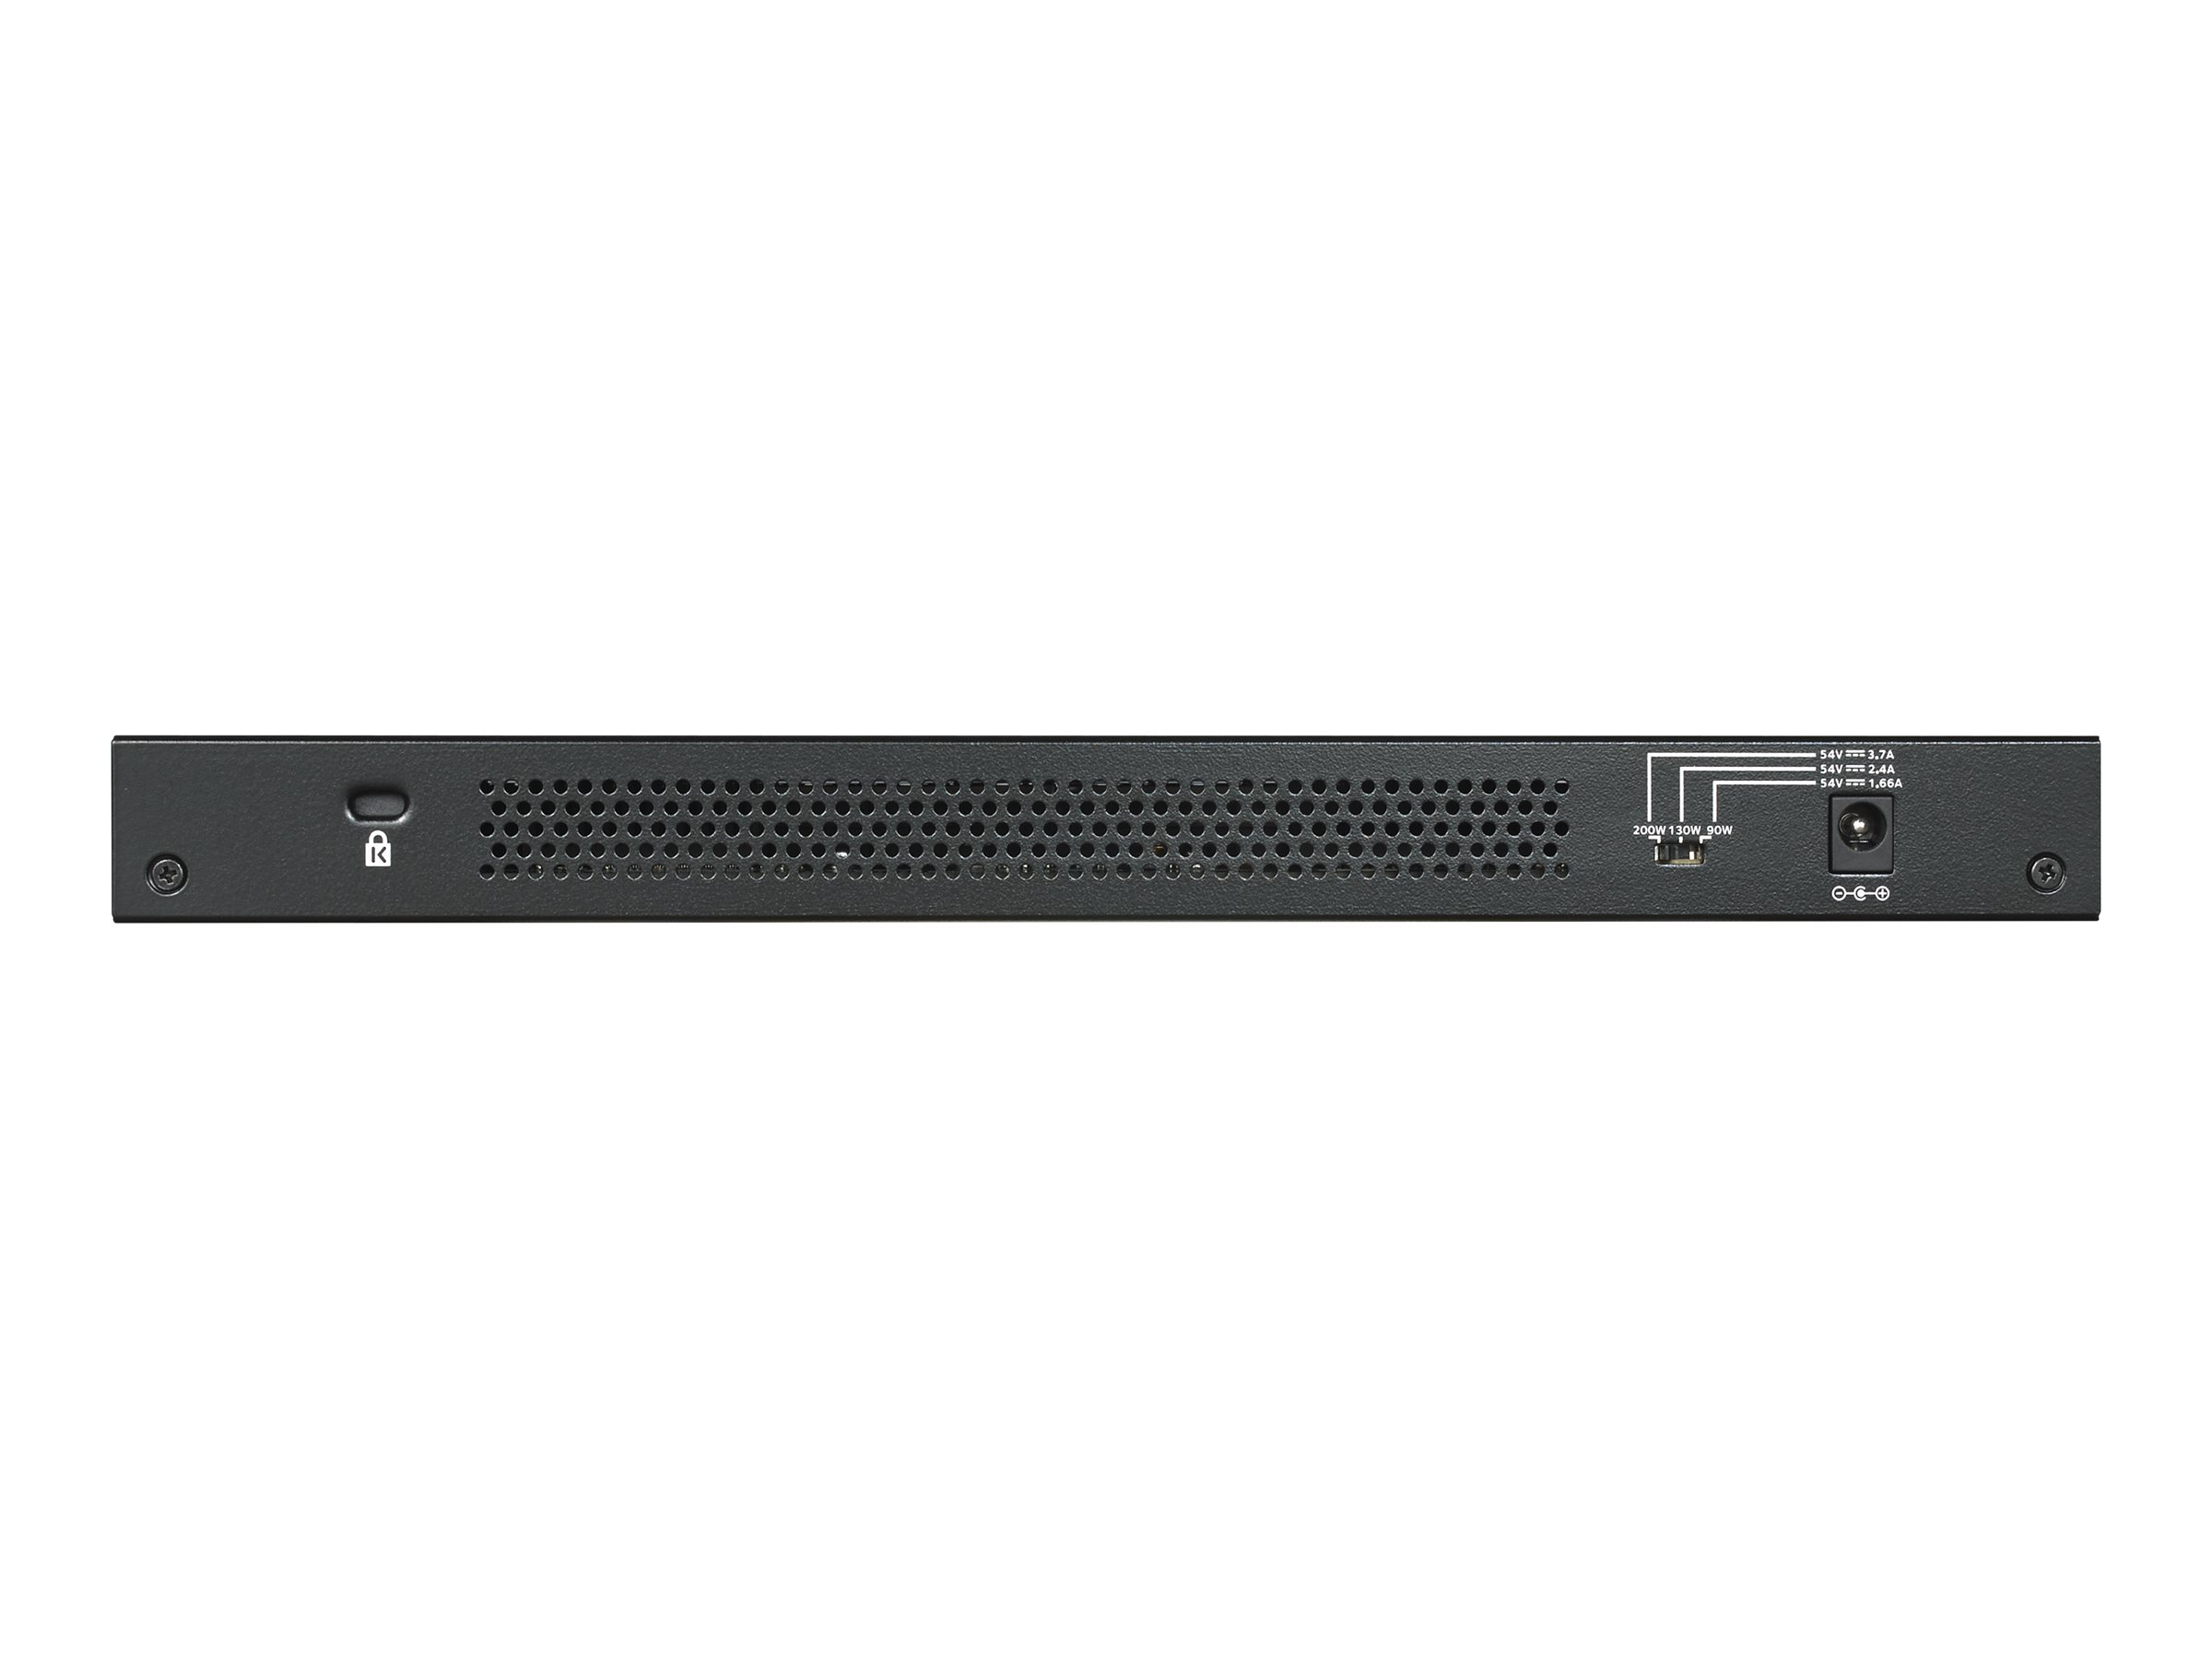 NETGEAR GS316PP - switch - 16 ports - unmanaged